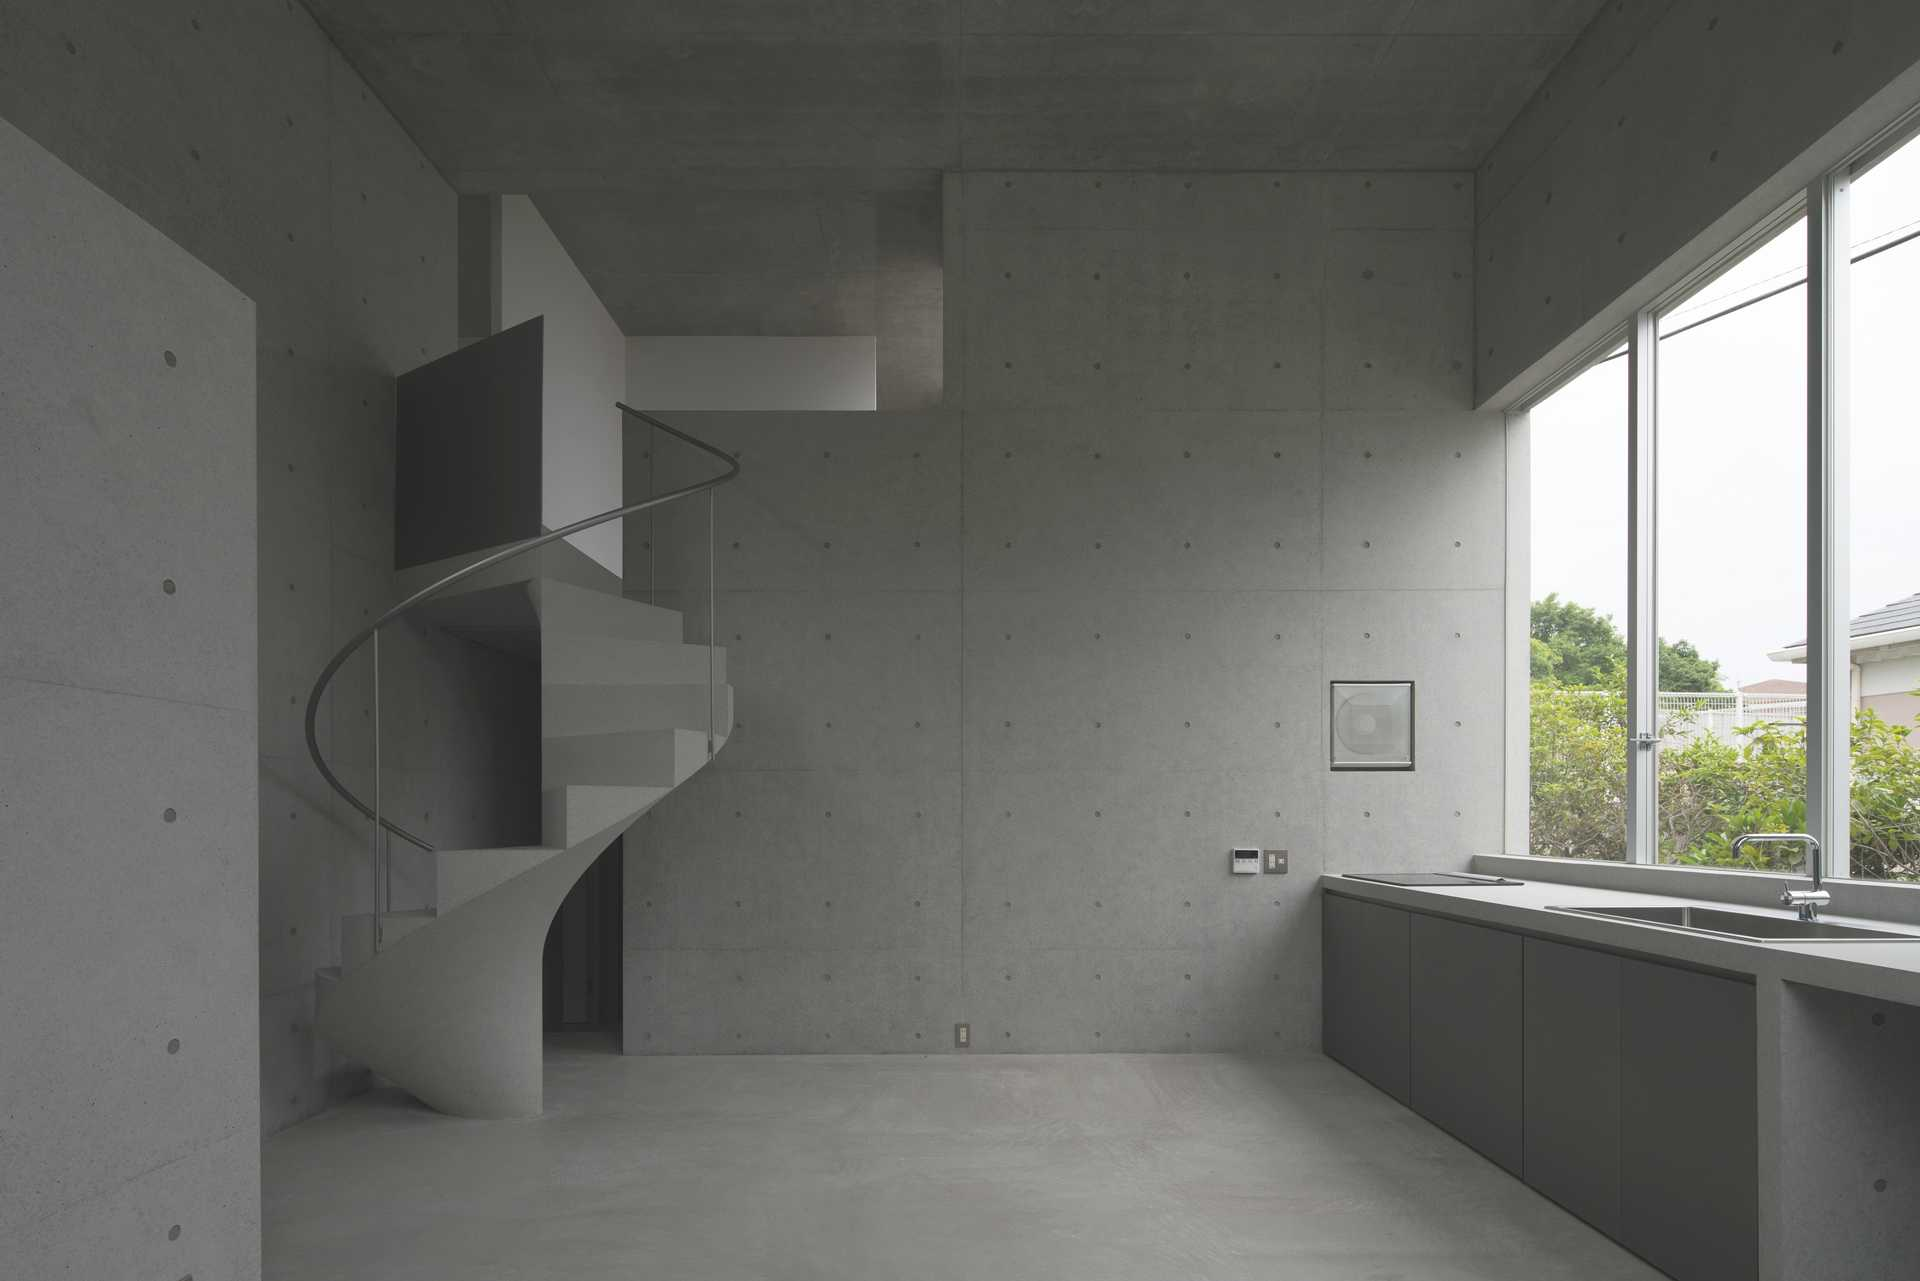 Concrete House  - 27 6 35